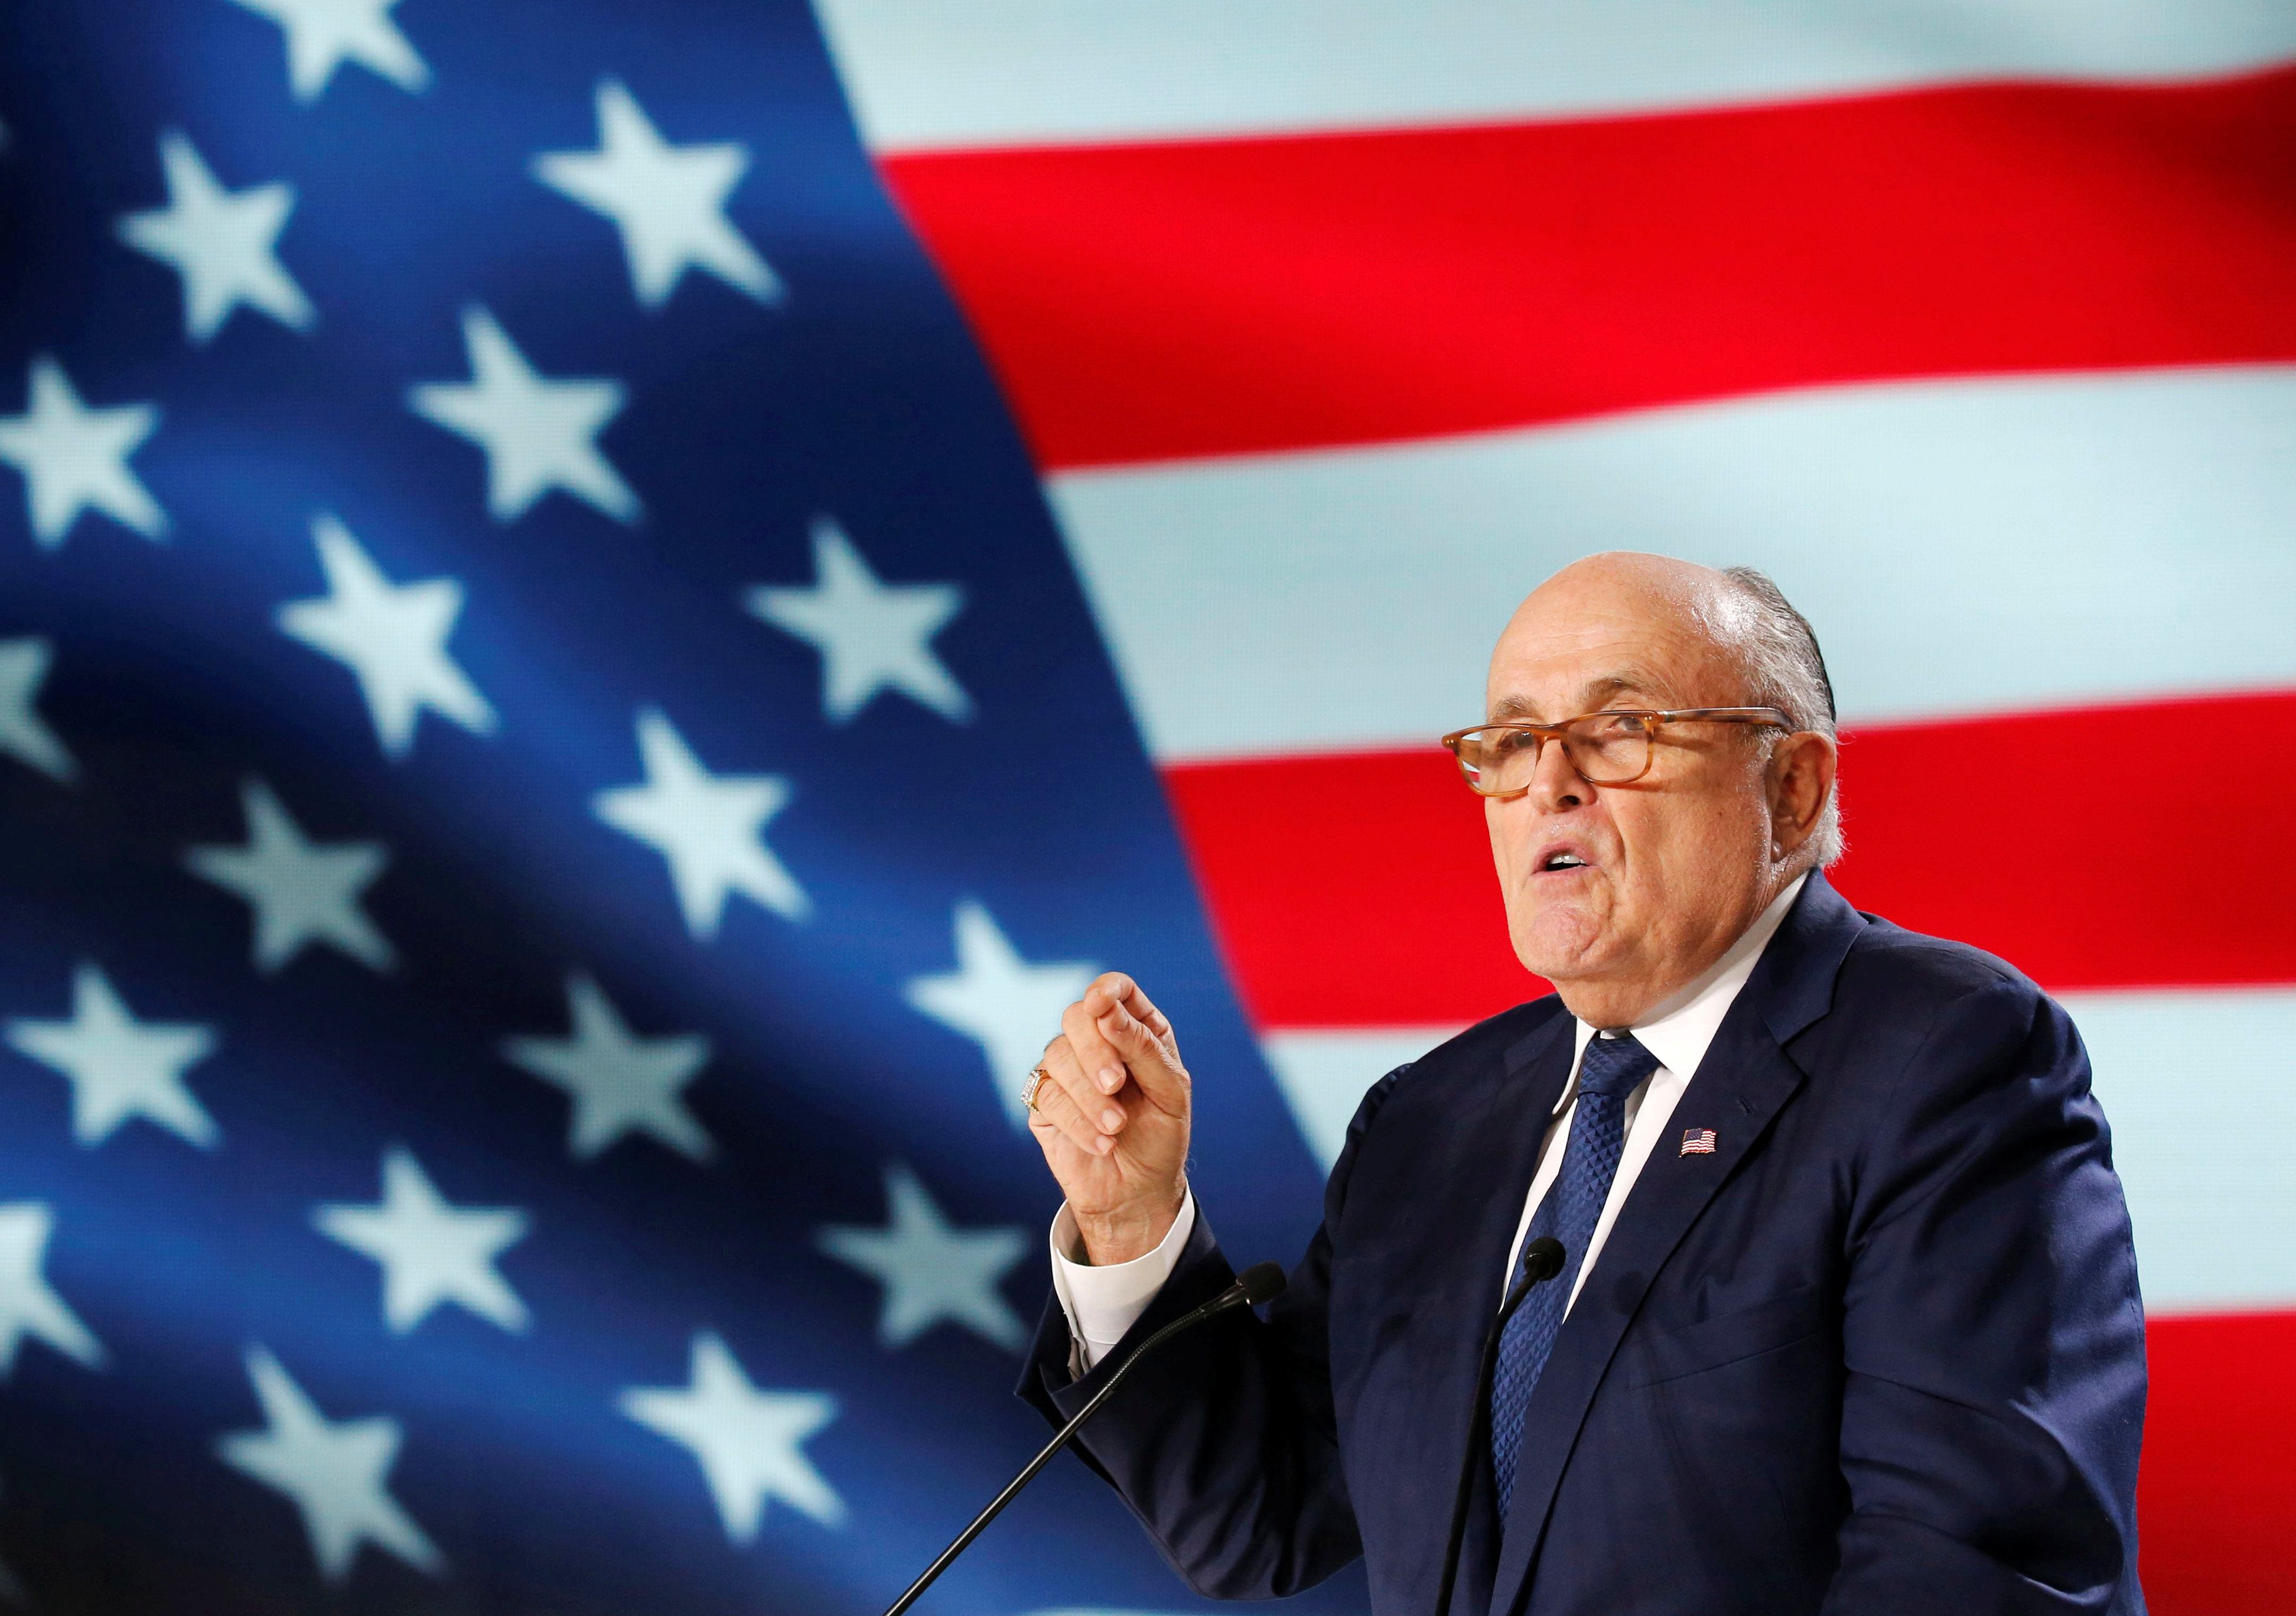 Rudy Giuliani, former Mayor of New York City, delivers his speech as he attends the National Council of Resistance of Iran (NCRI), meeting in Villepinte, near Paris, France, June 30, 2018.  REUTERS/Regis Duvignau